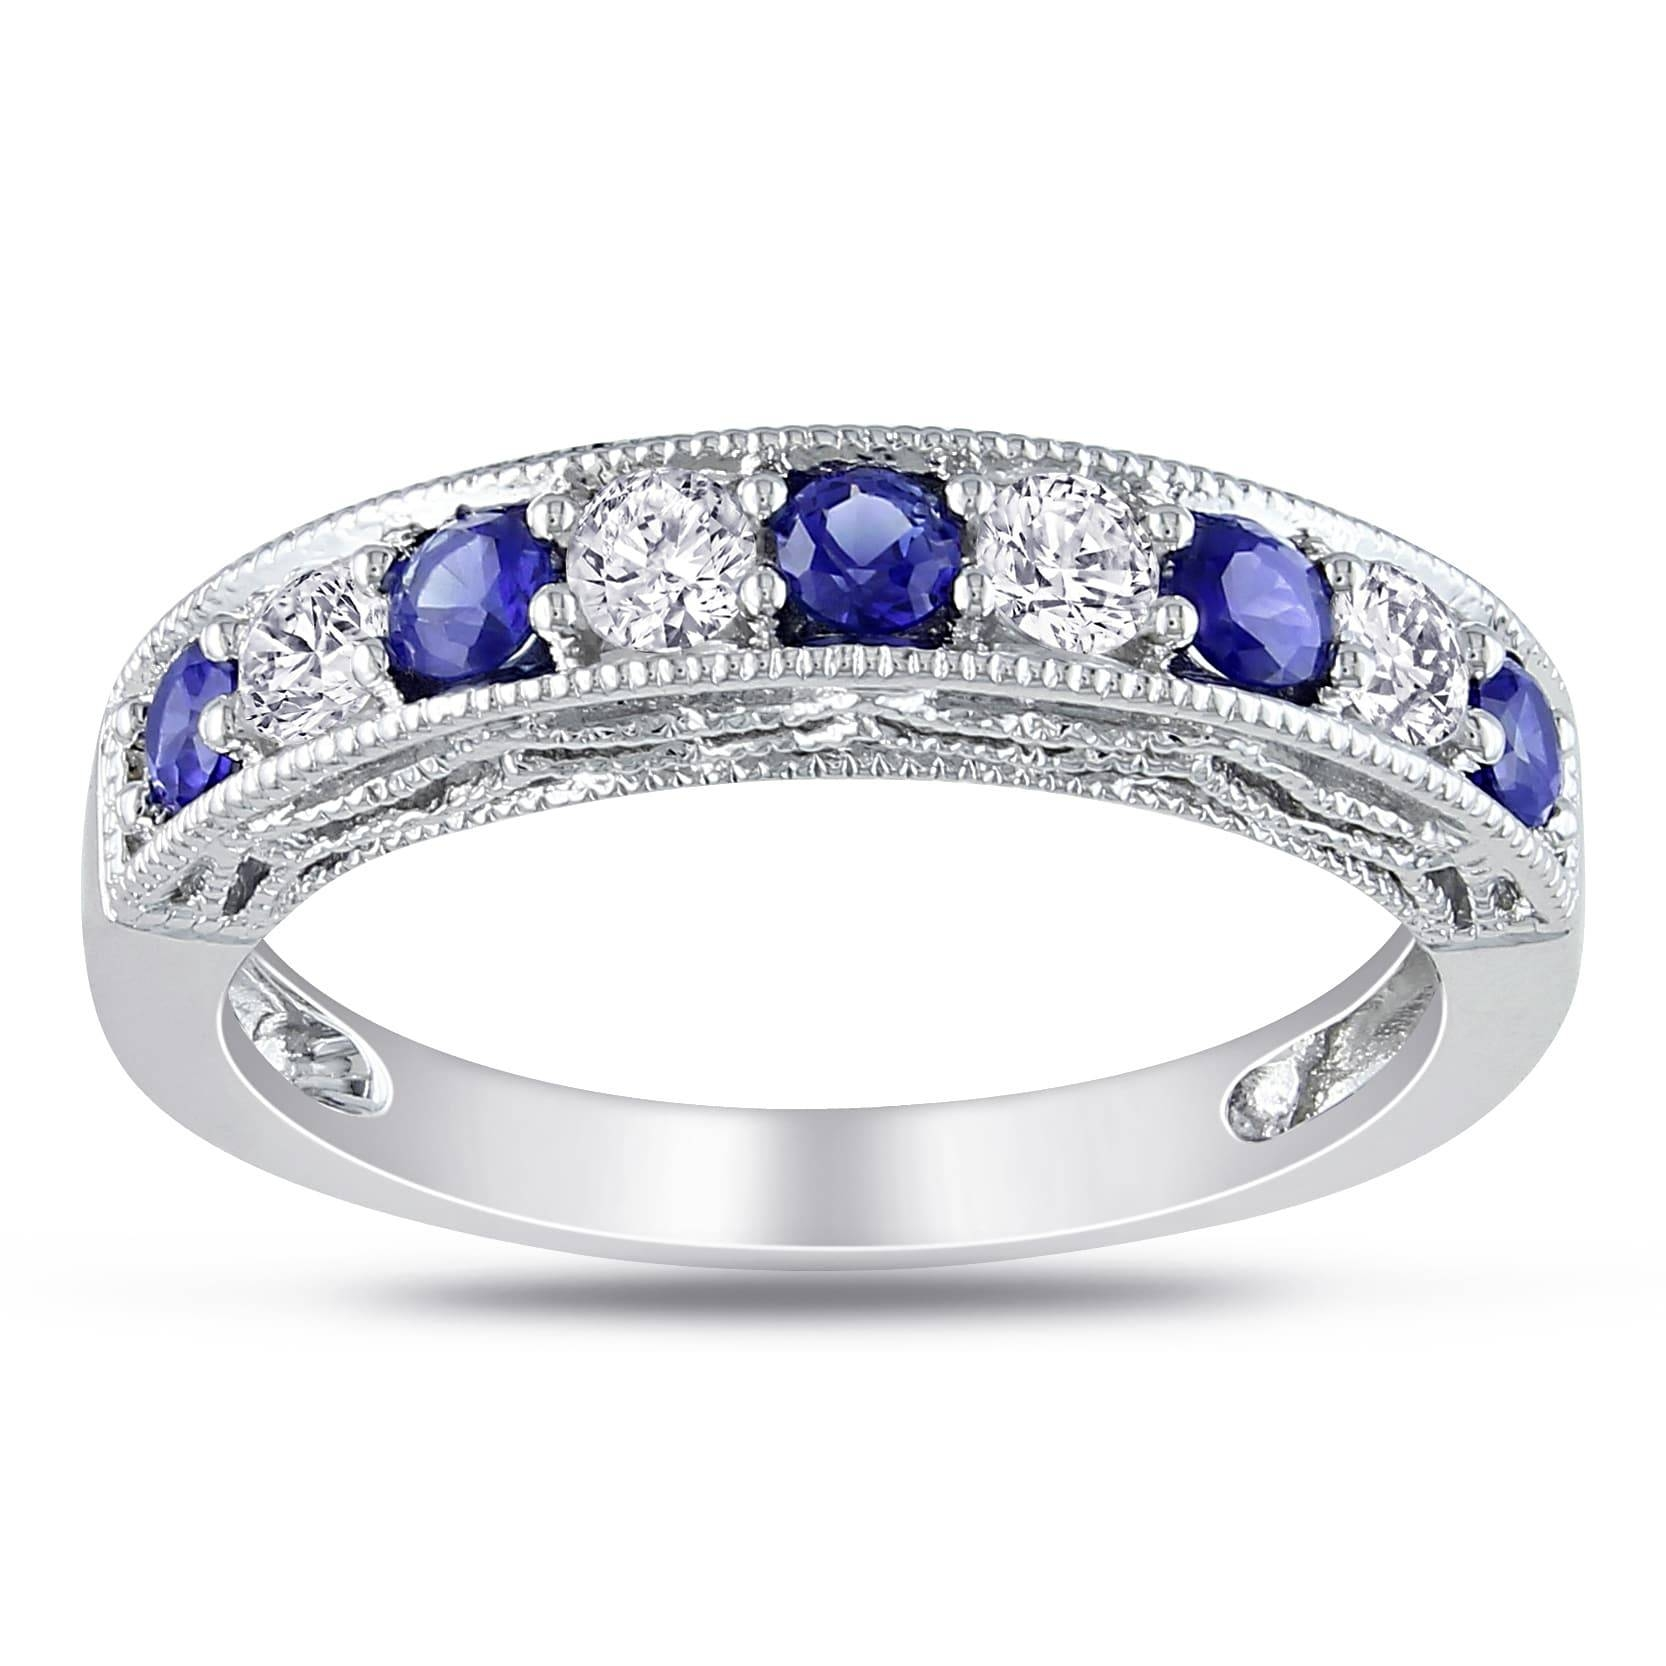 Miadora Sterling Silver Created Blue And White Sapphire Stackable Regarding Current Silver Wedding Anniversary Rings (View 16 of 25)